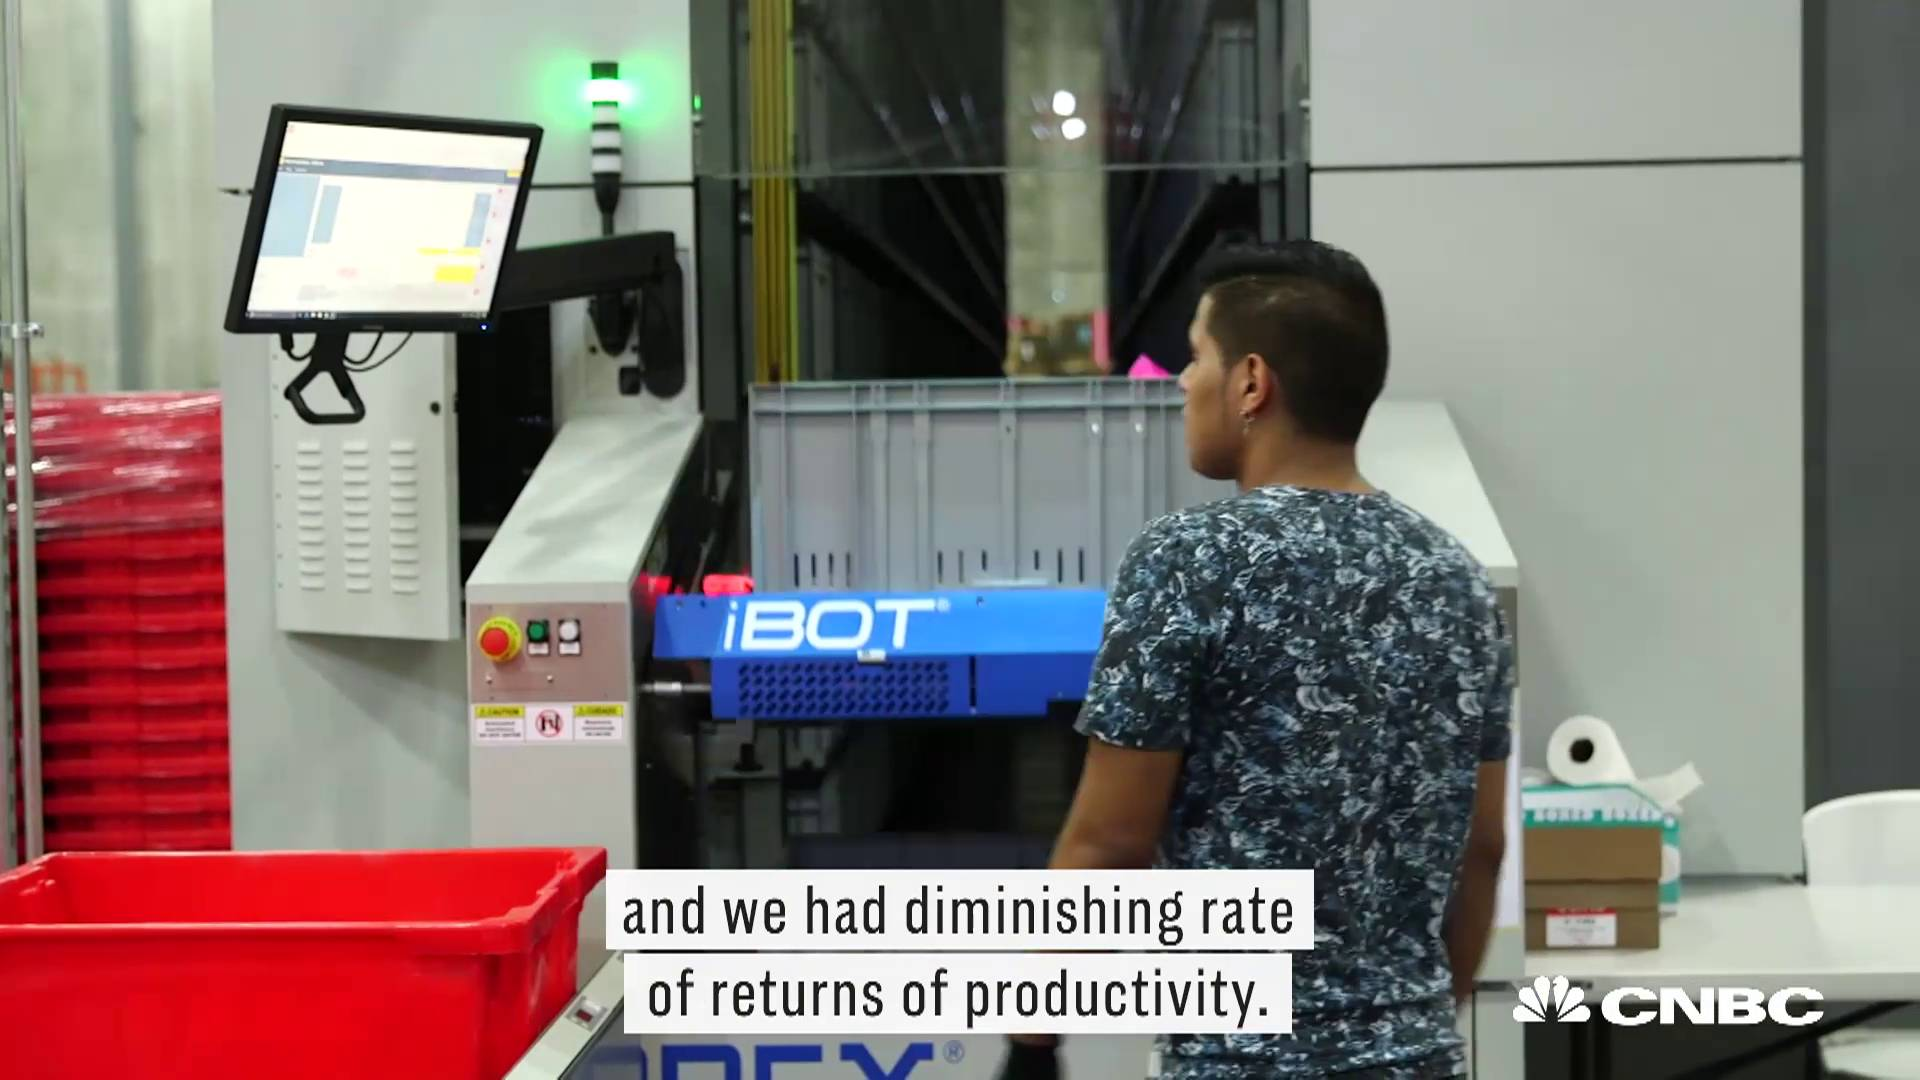 According to Boxed's founder and CEO, Chieh Huang, automating their Union City, New Jersey fulfillment center has resulted in a 6 to 7 times improvement in their picking productivity.